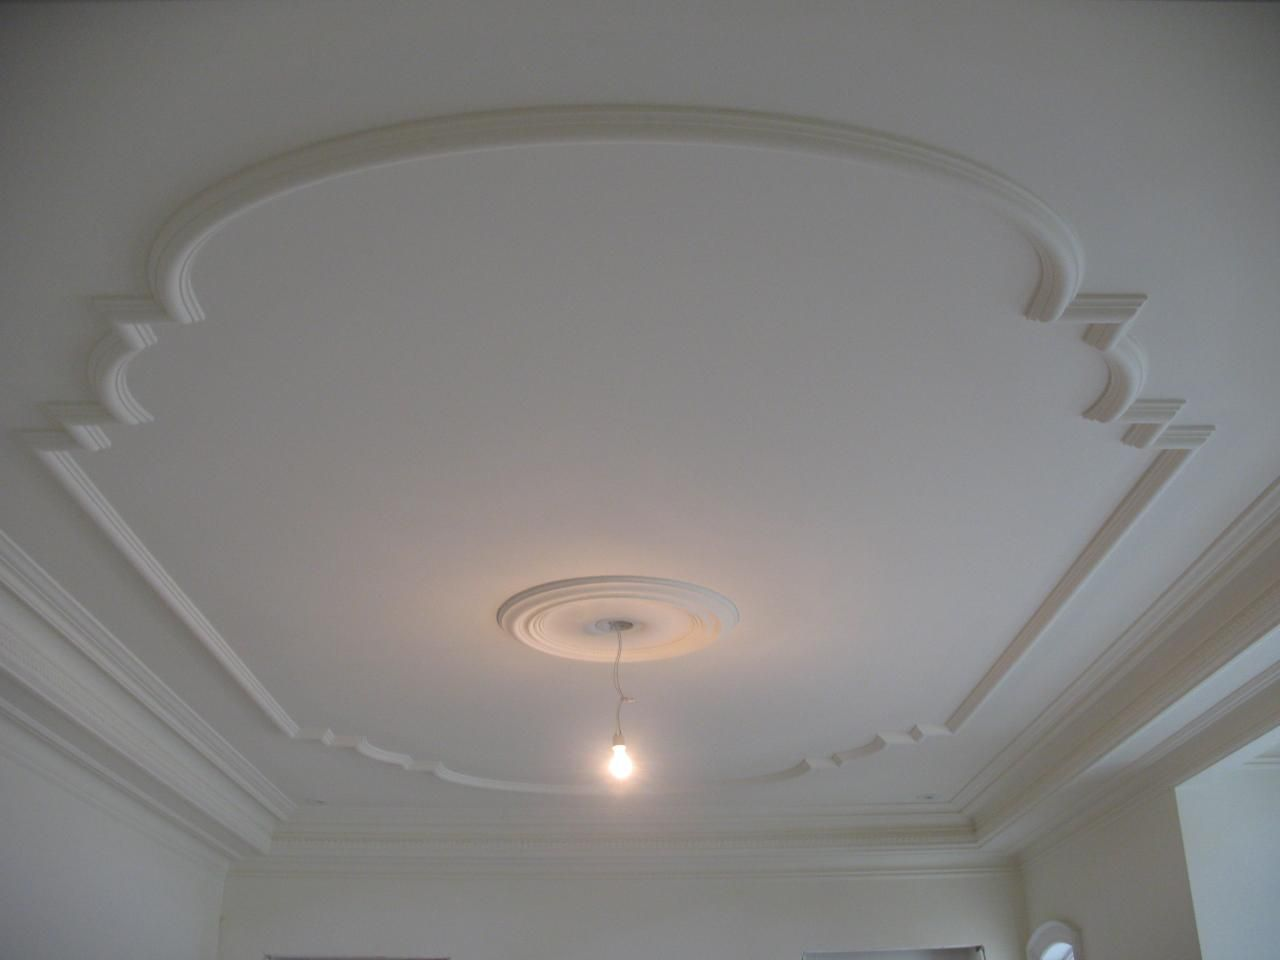 Empire Plaster Moulding Ceiling Designs Plaster Ceiling Design Pop Design For Roof Molding Ceiling